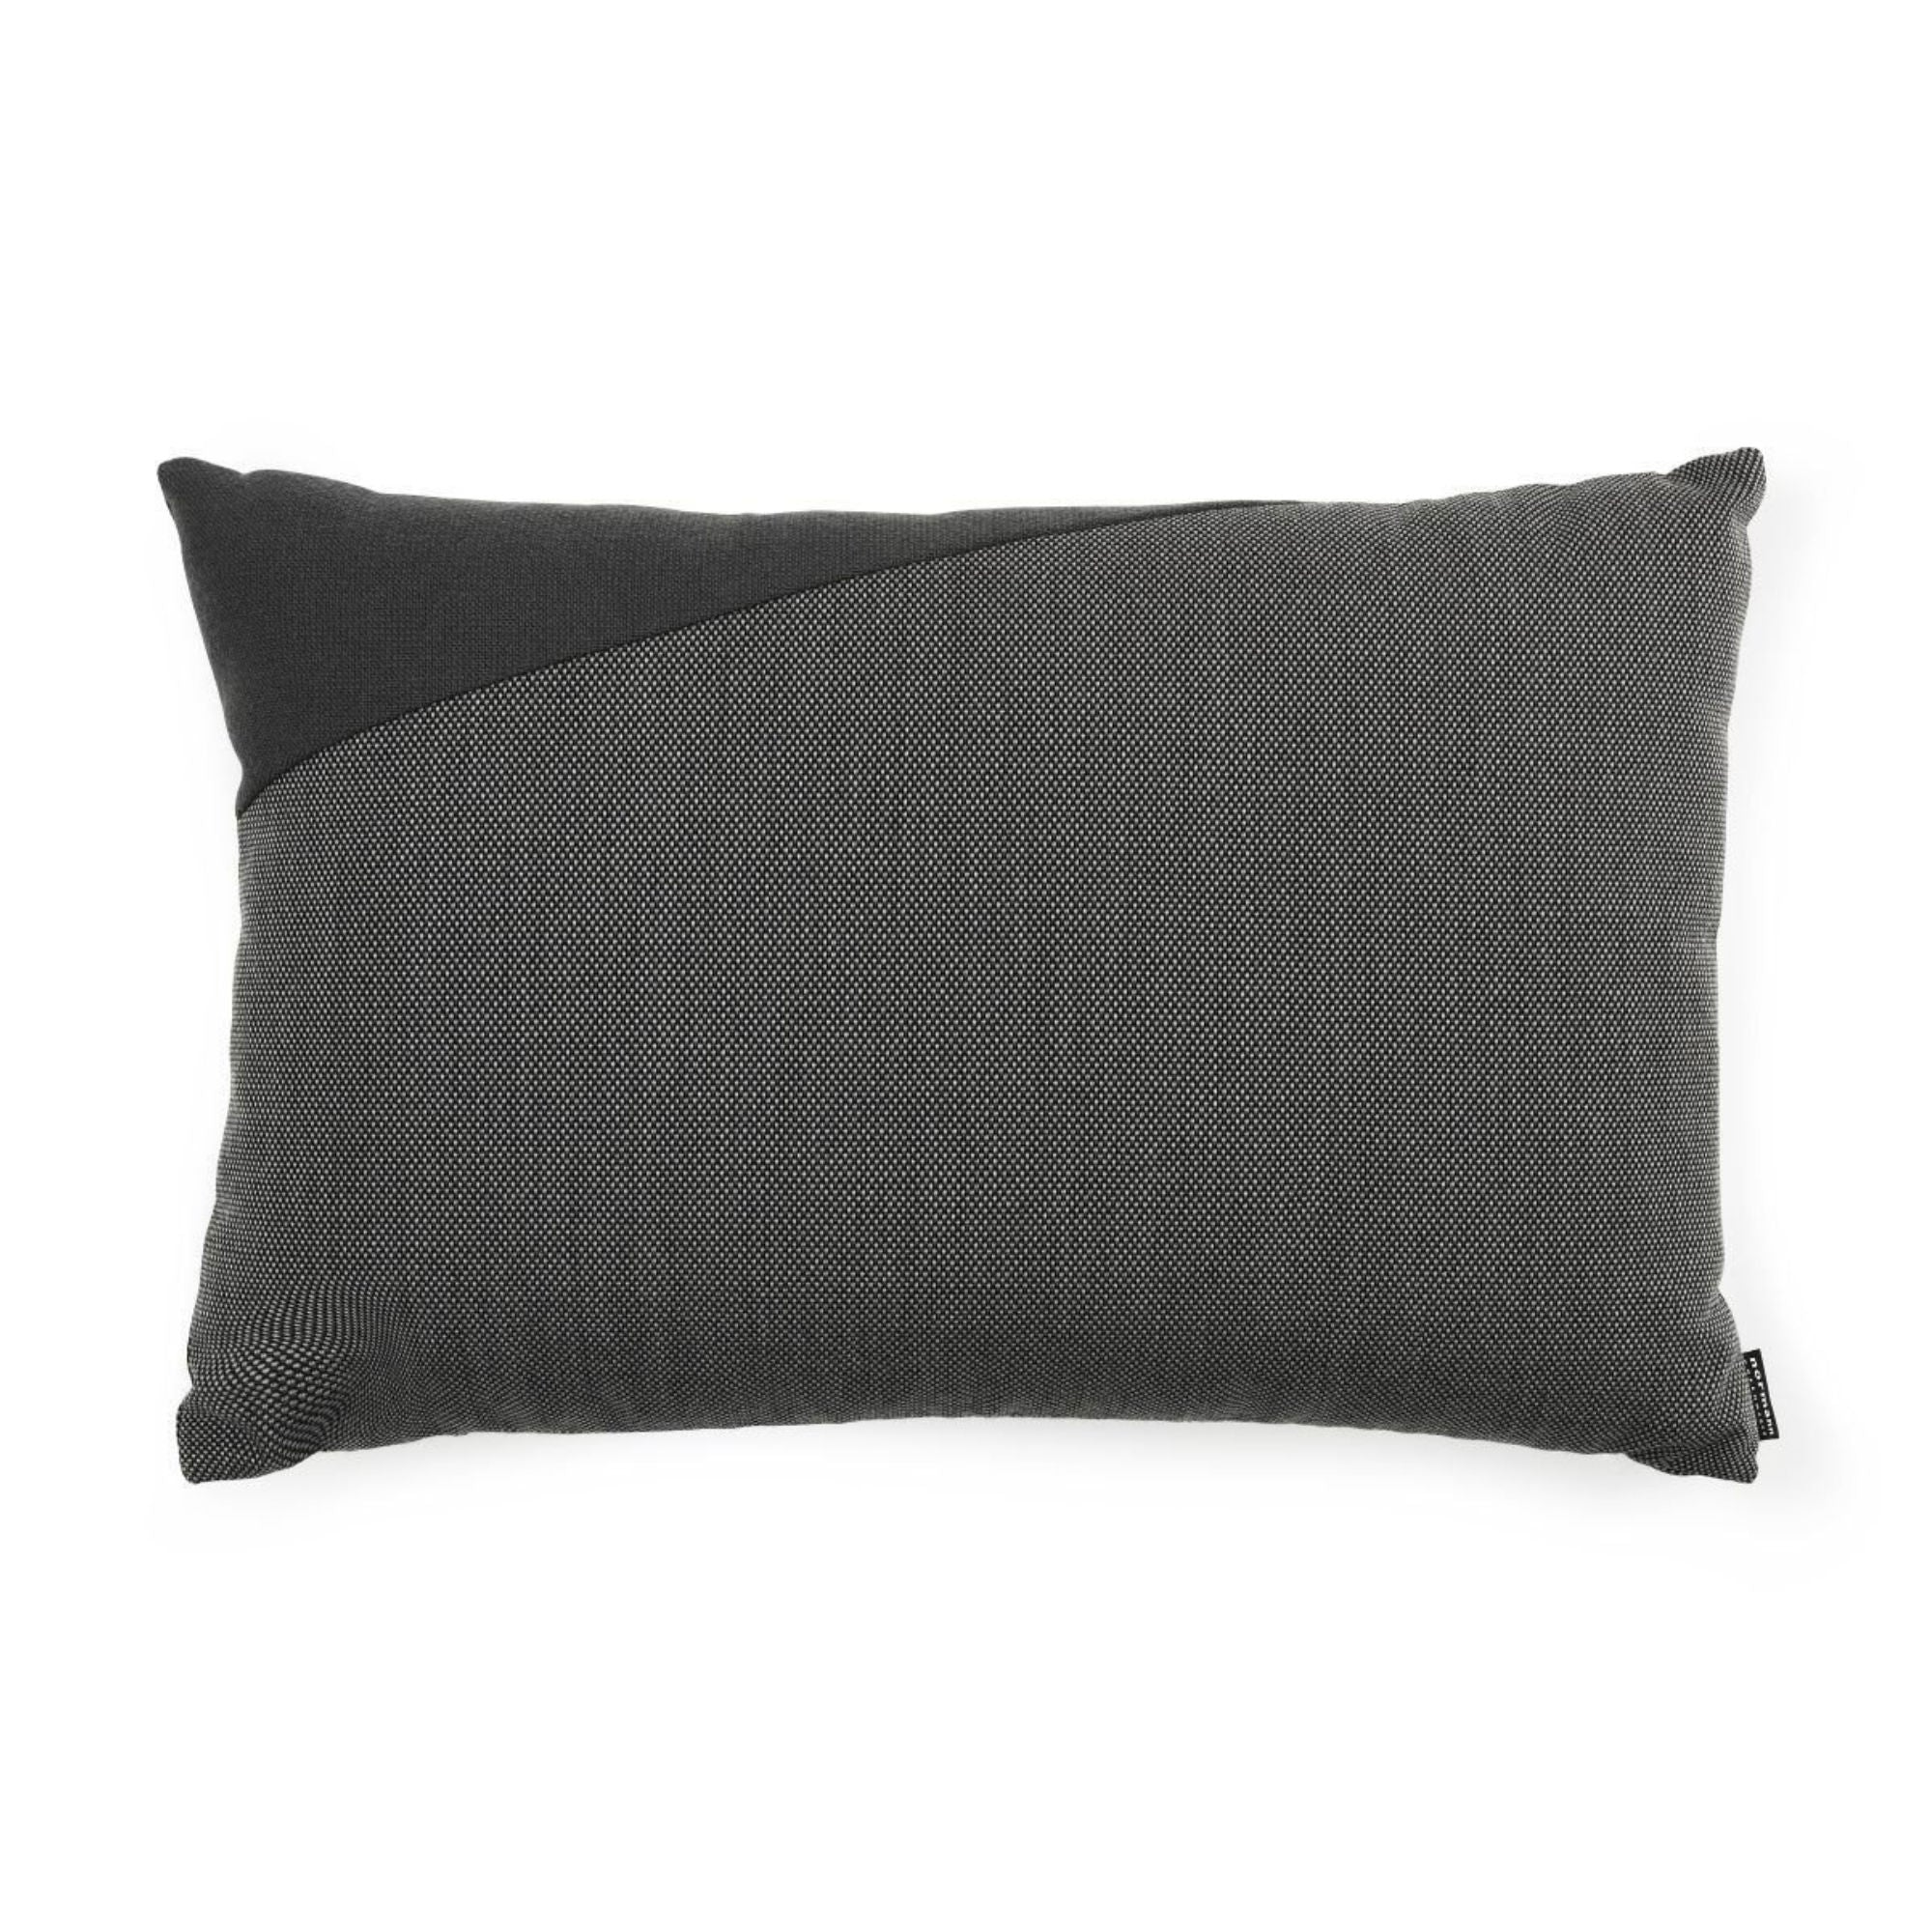 Normann Copenhagen Edge cushion, dark grey